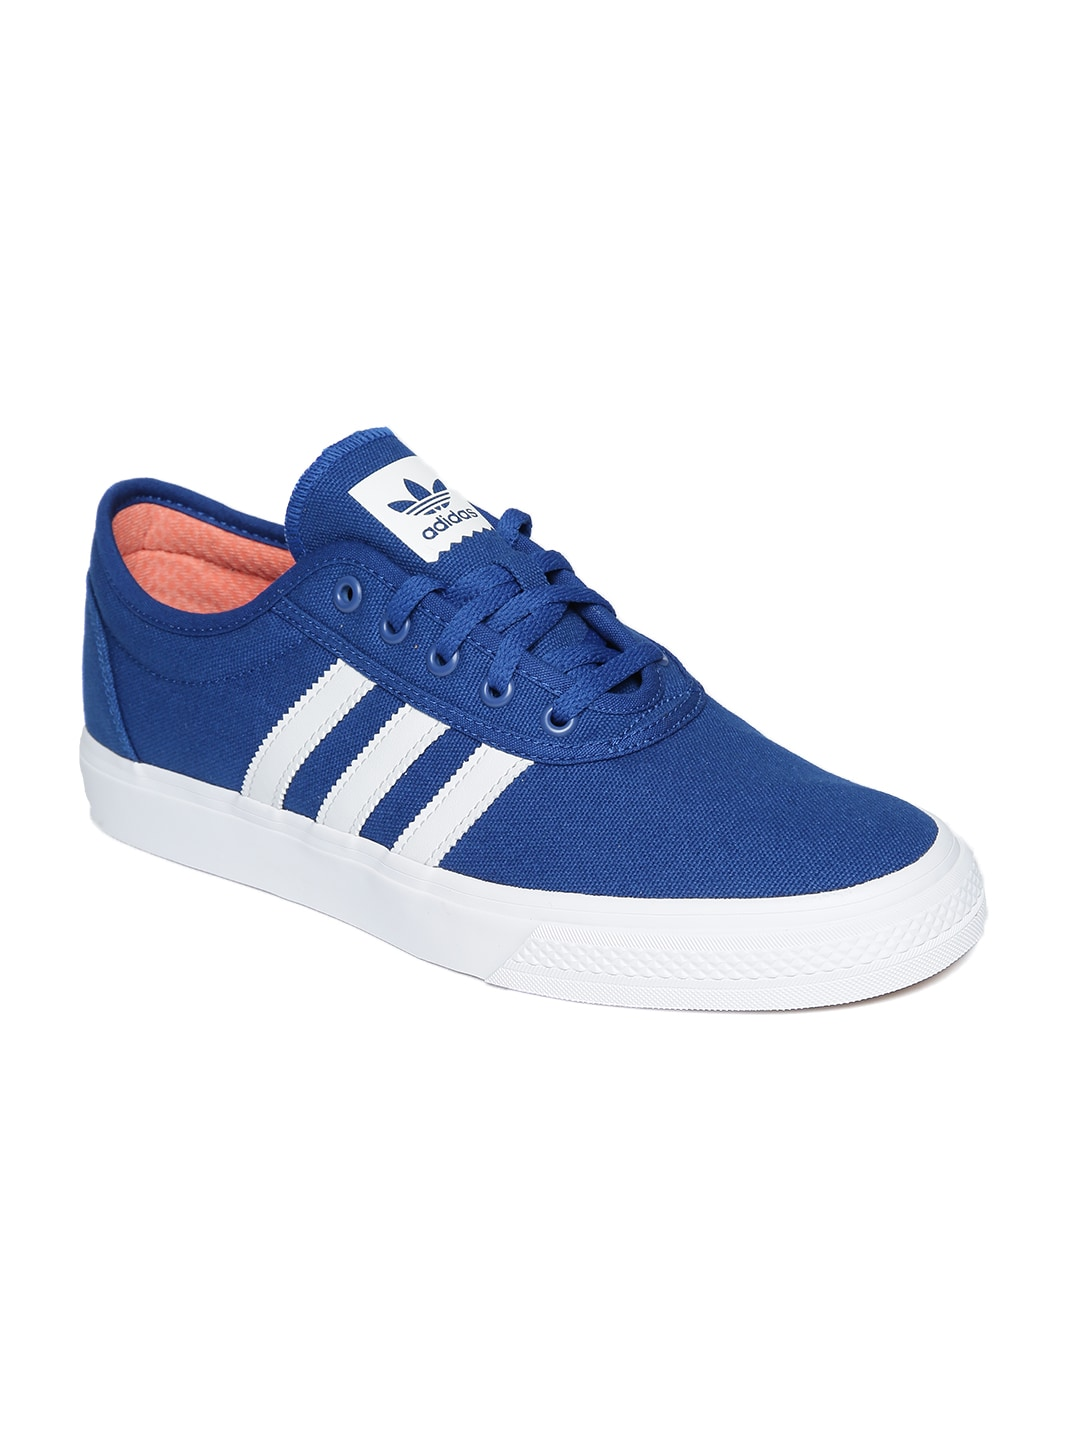 super popular 28815 e4897 Adidas Scott - Buy Adidas Scott online in India